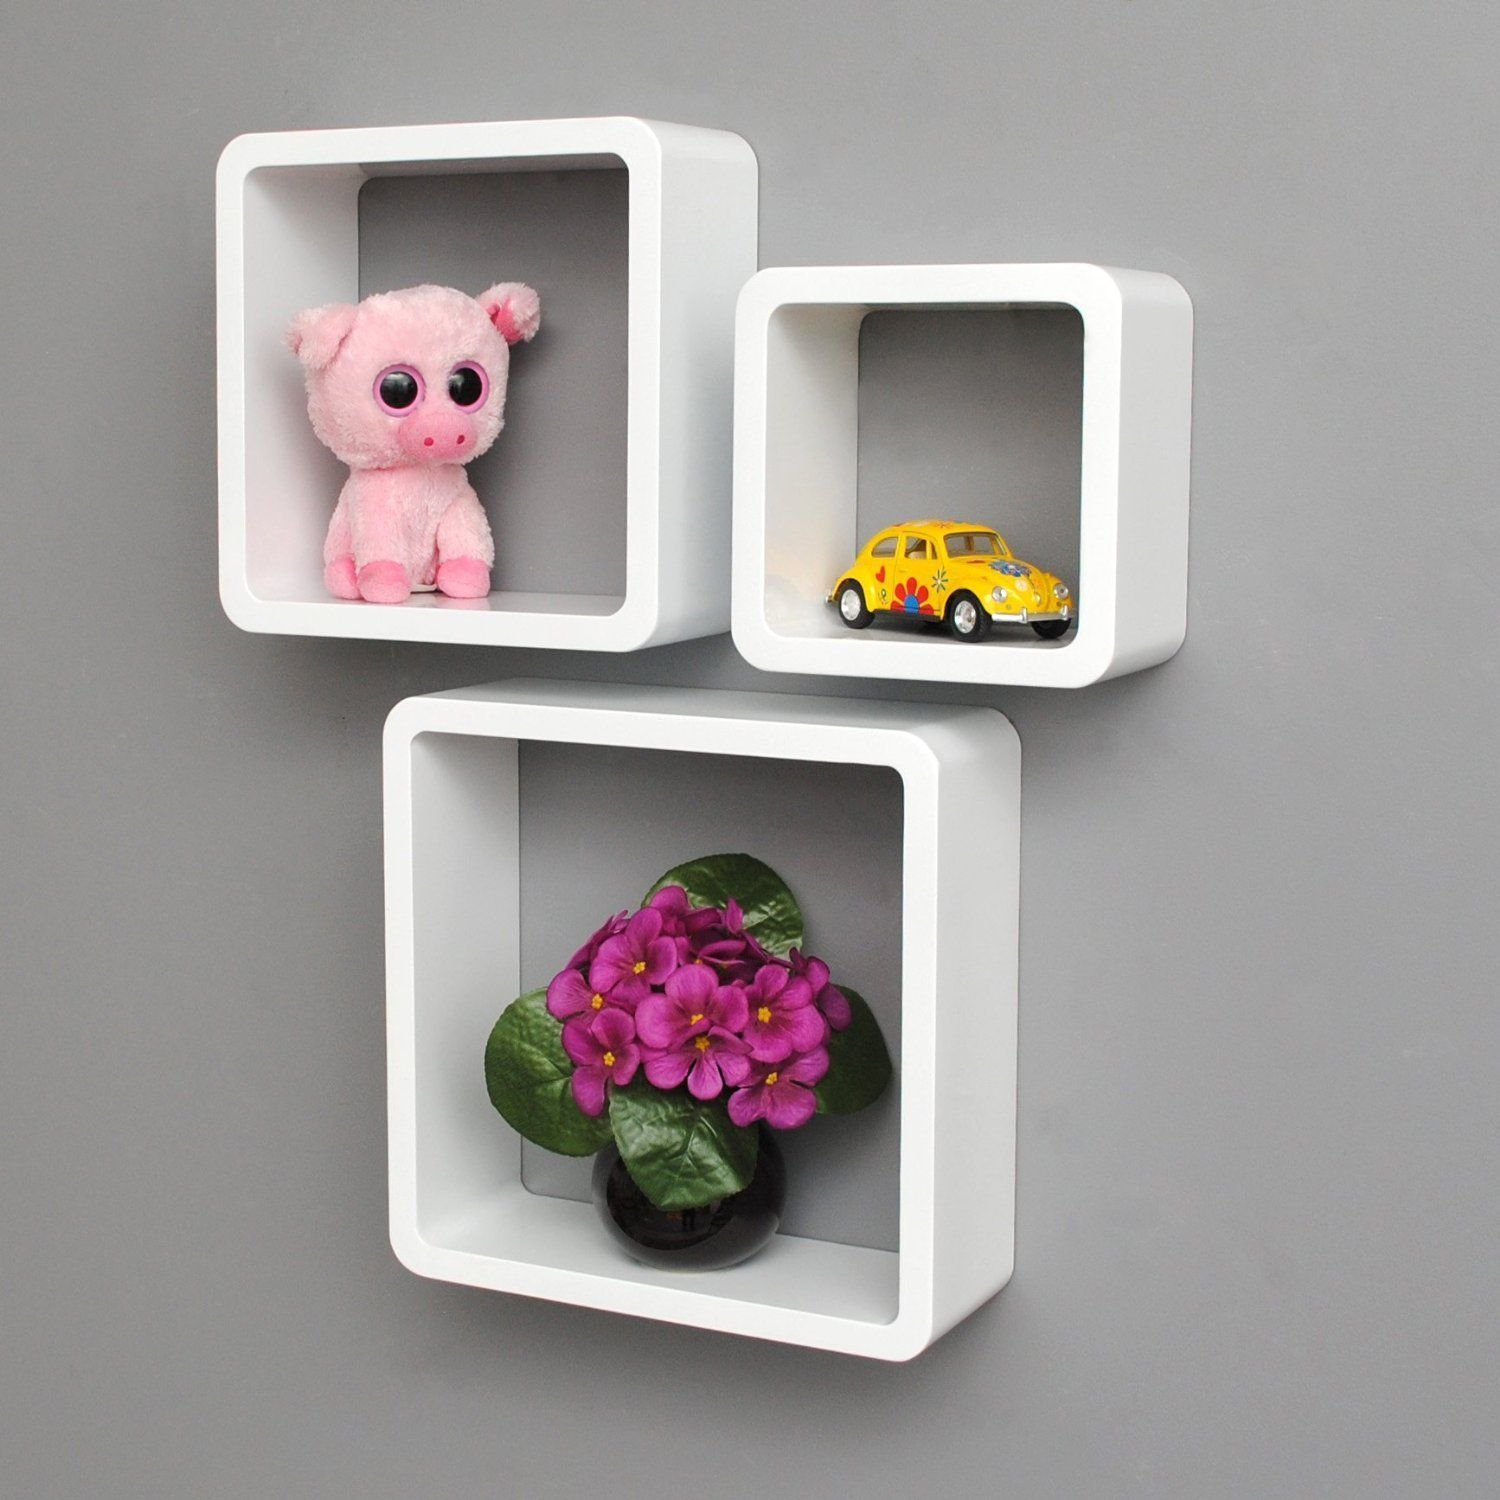 Uniifurn Square Wall Shelves Rounded Corner Set Of 3 White You Can Get More Details Here Floating Shelves Shelves Wall Shelves Lounge Cube